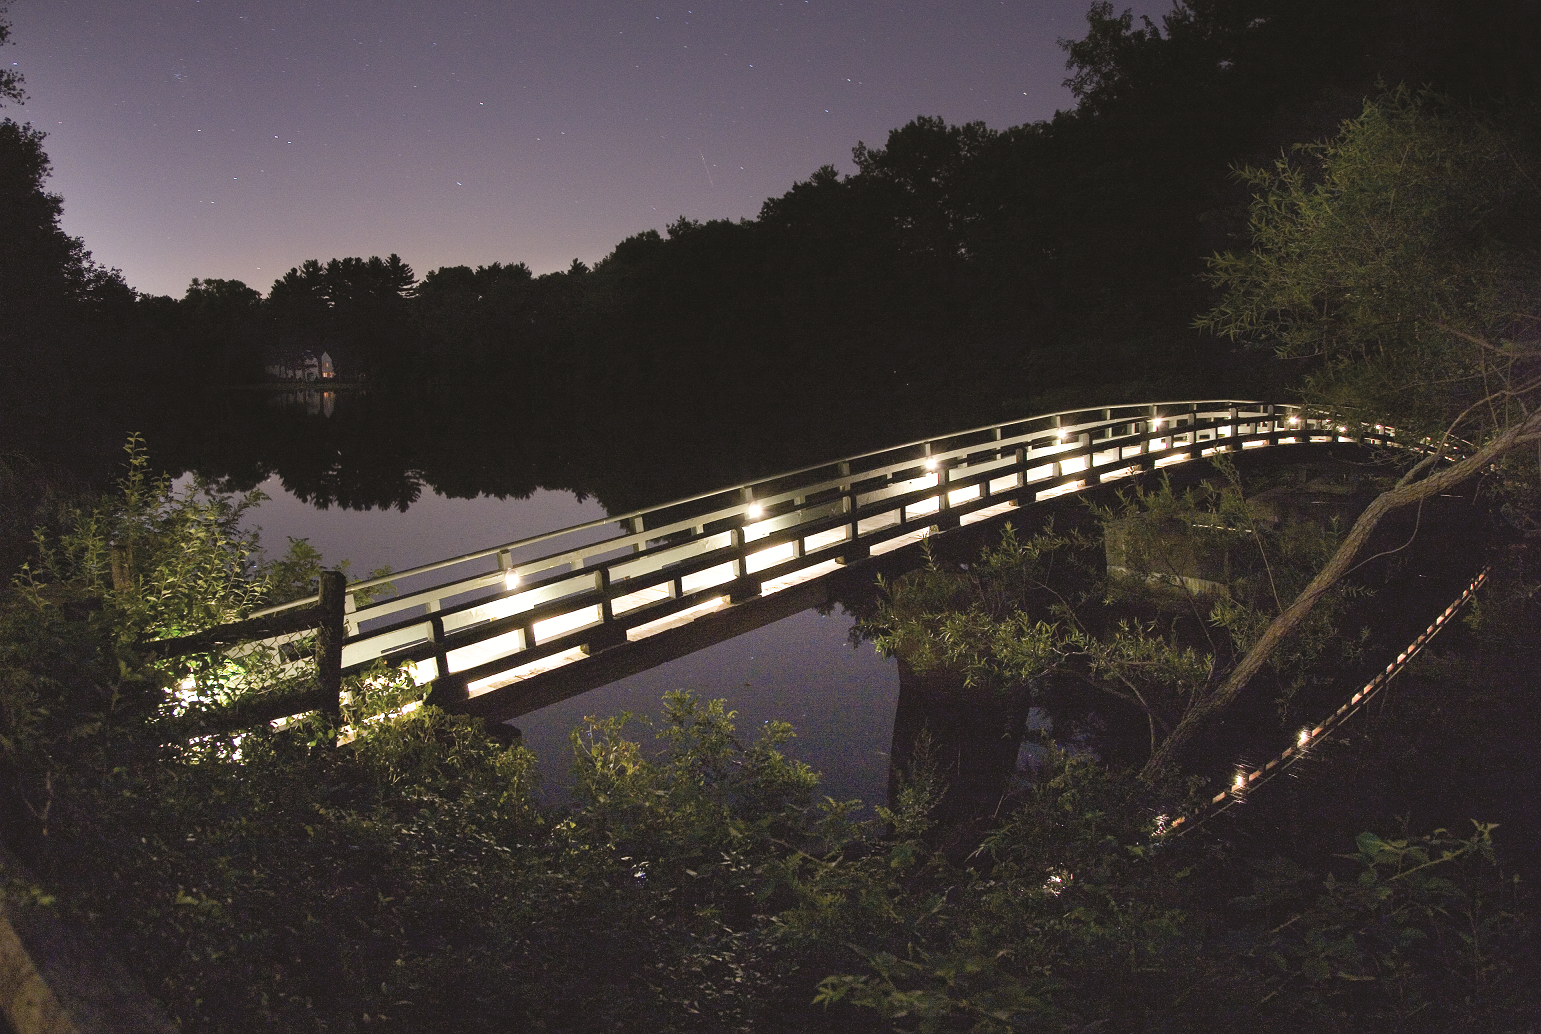 Outdoor lighting supply for a public space in New Jersey, NJ